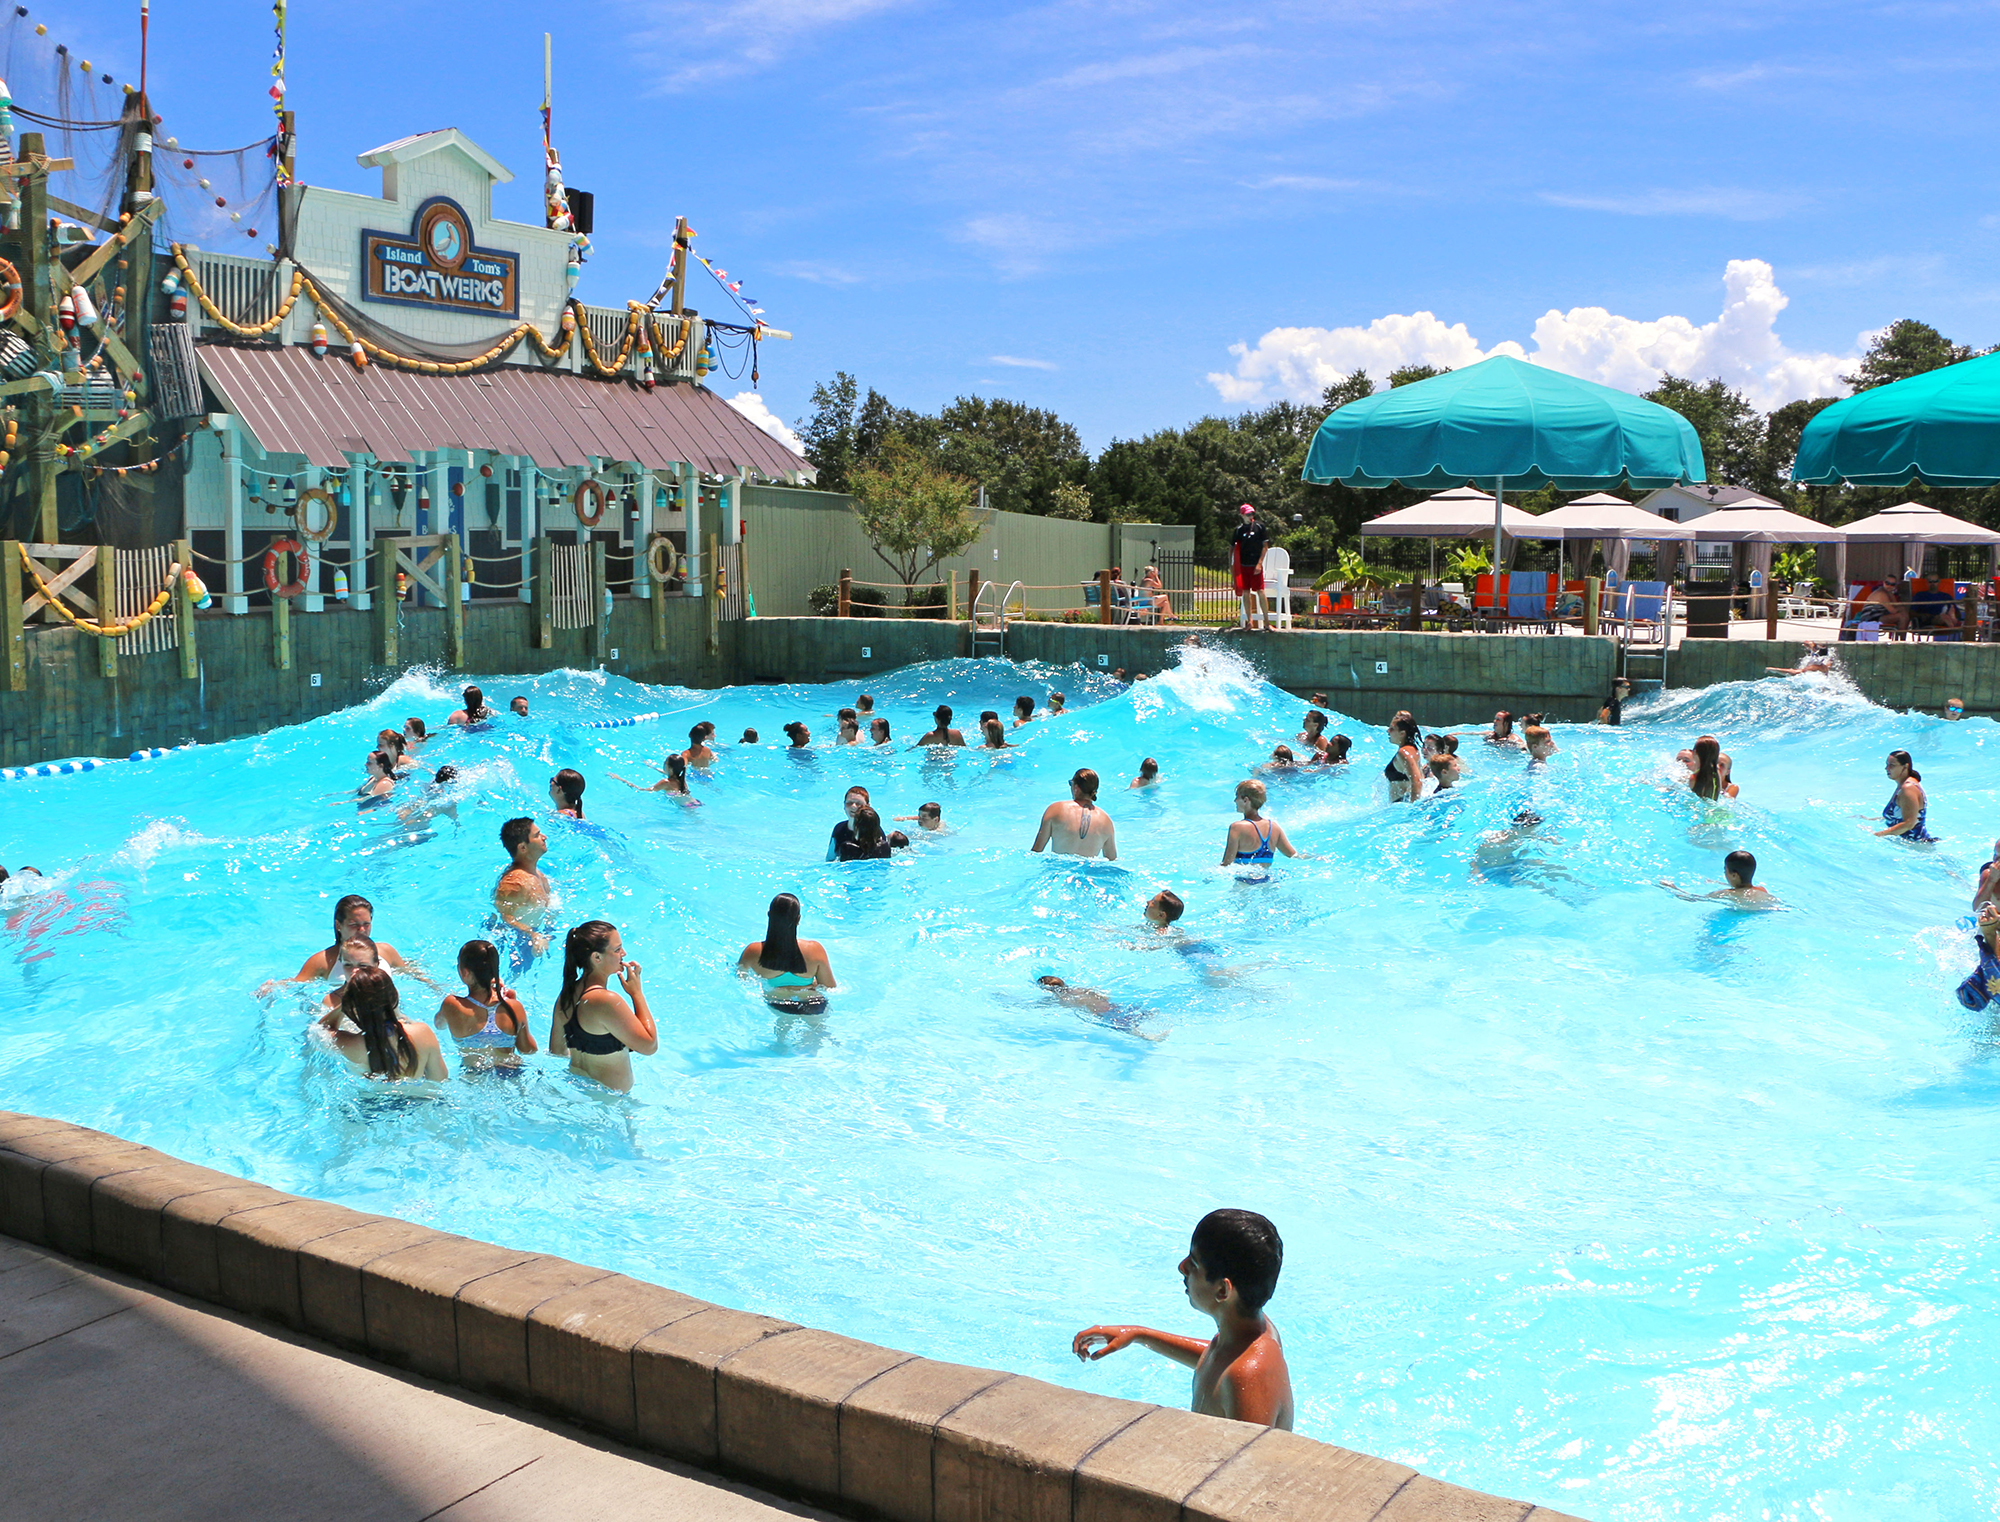 Water Park Package. Stay with us and Cool Off with a day of fun at the Cawabunga Bay Water Park! Enjoy Beaches, Pools, Slides, Bays & Rivers. There's more than one way to cool off.